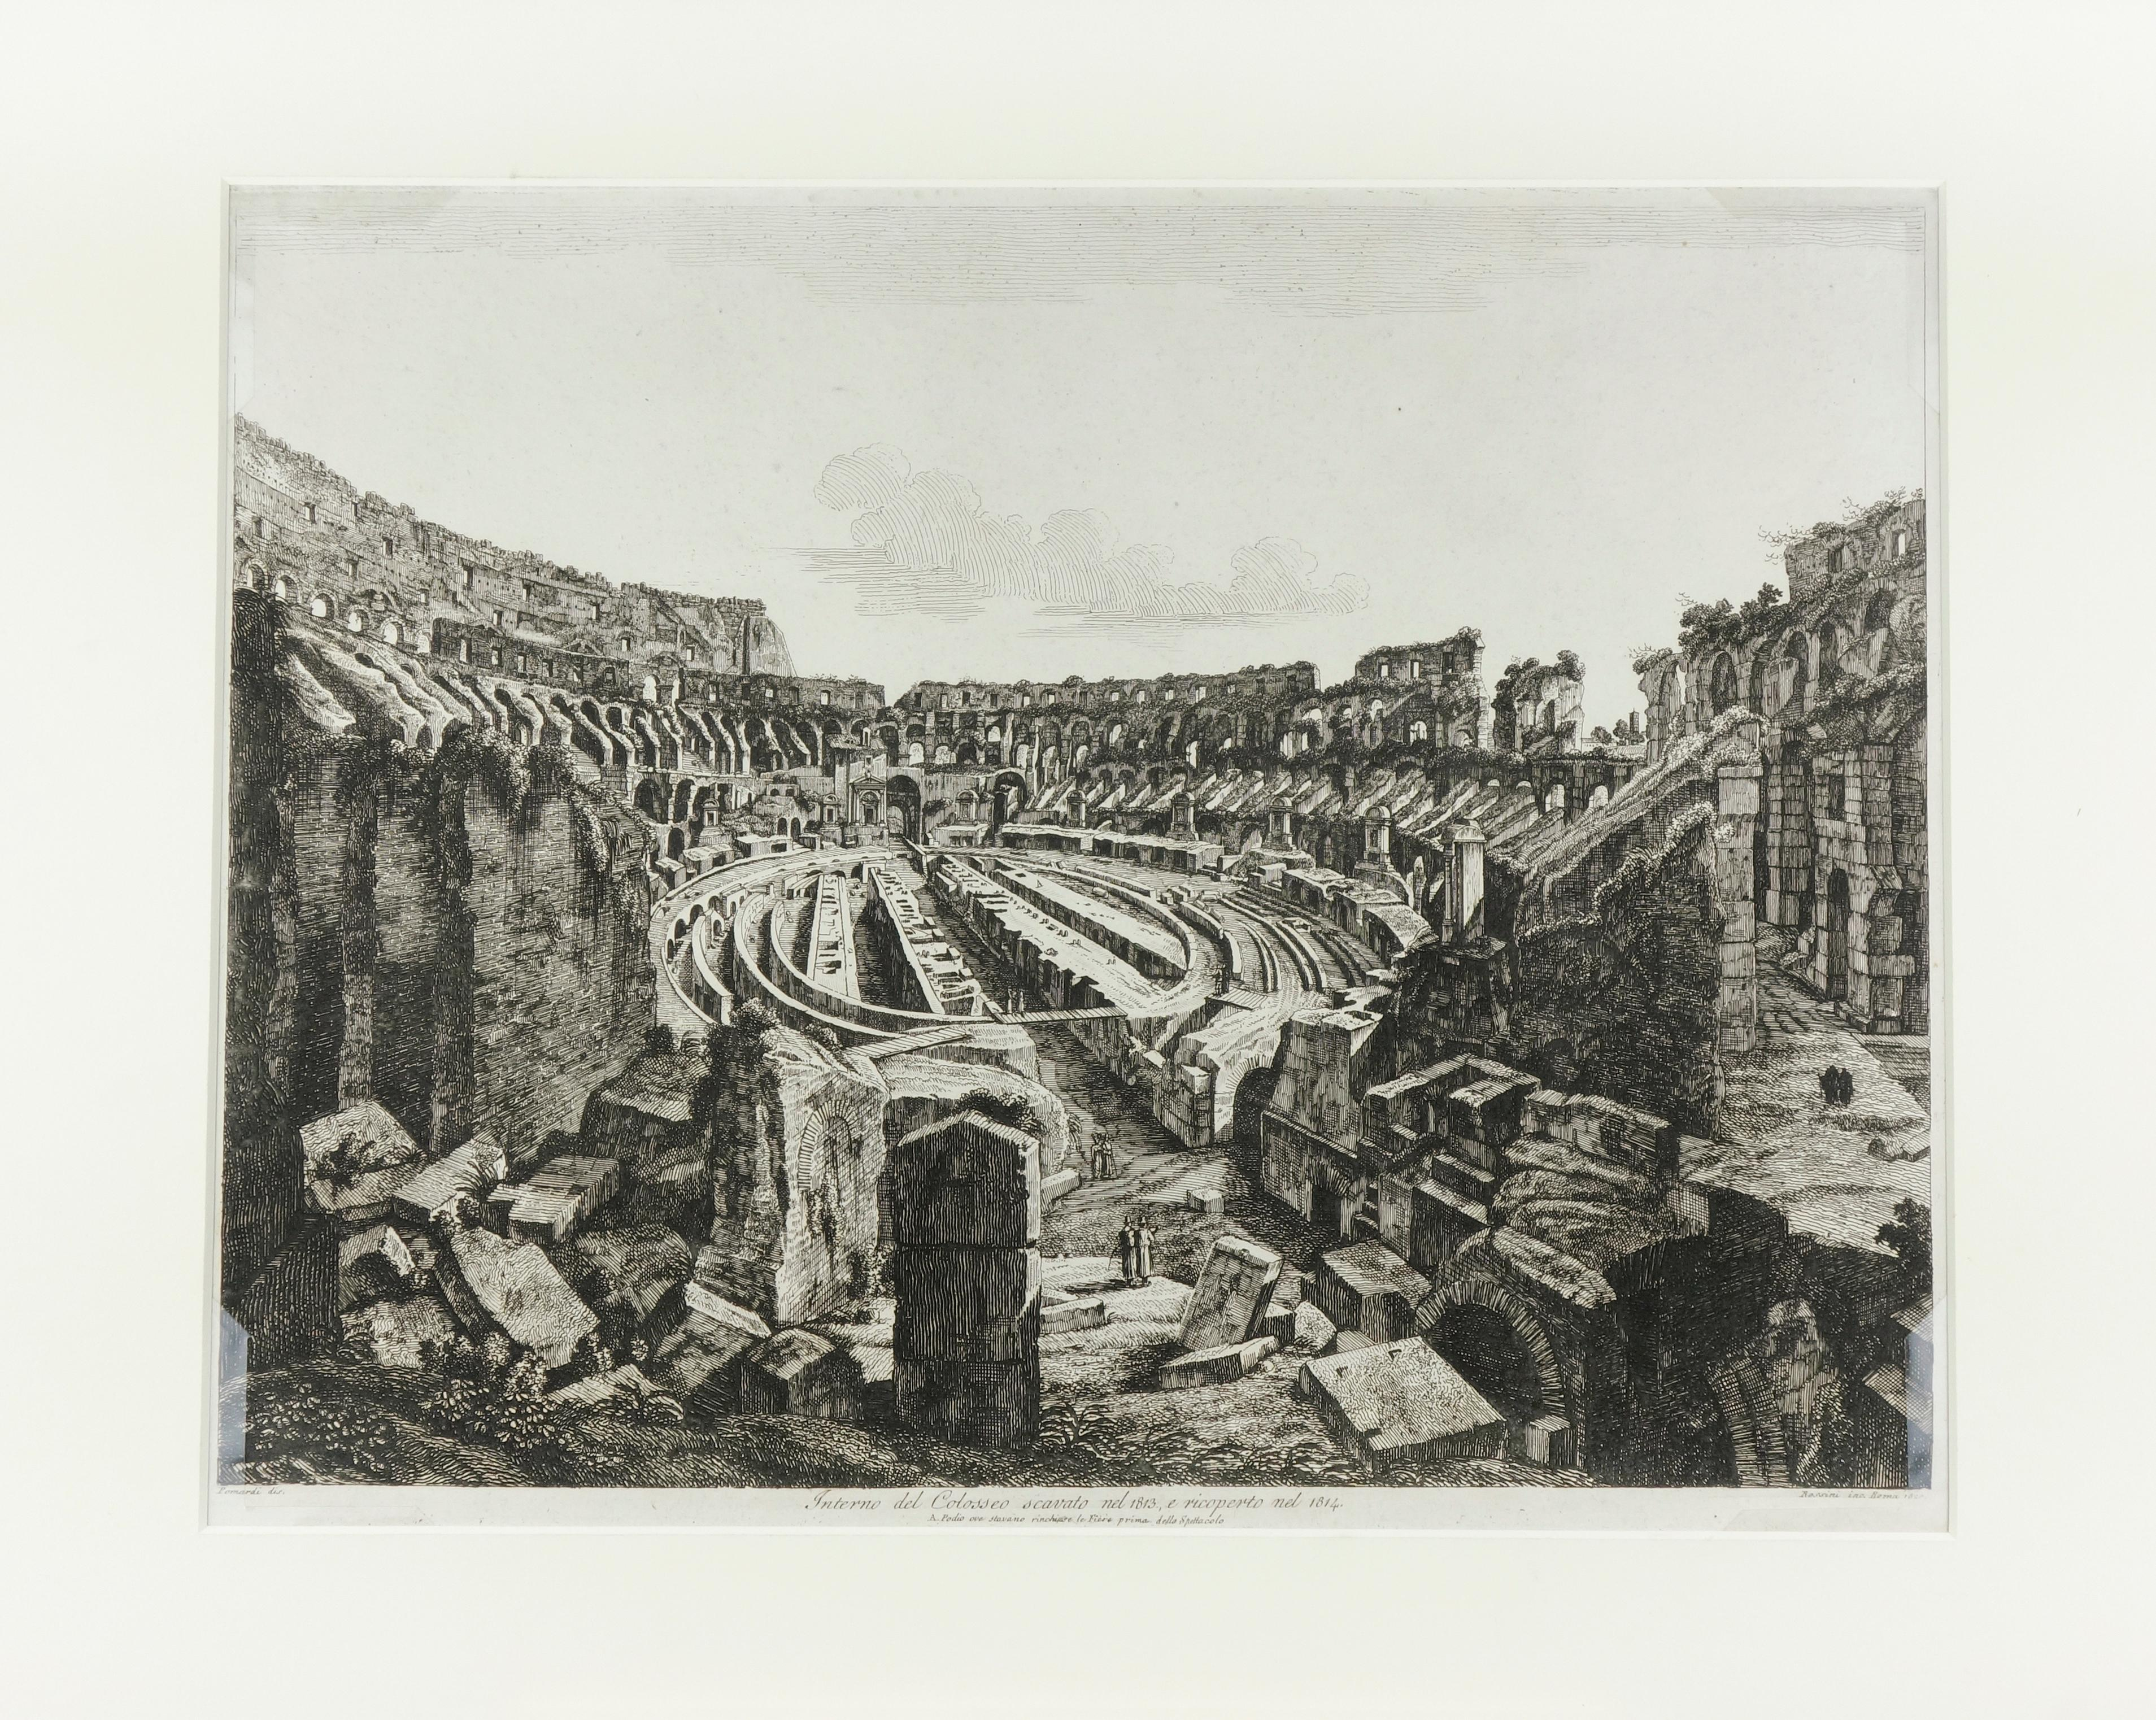 Interior of the Colosseum in Rome, excavated in 1813 and reconstructed in 1814